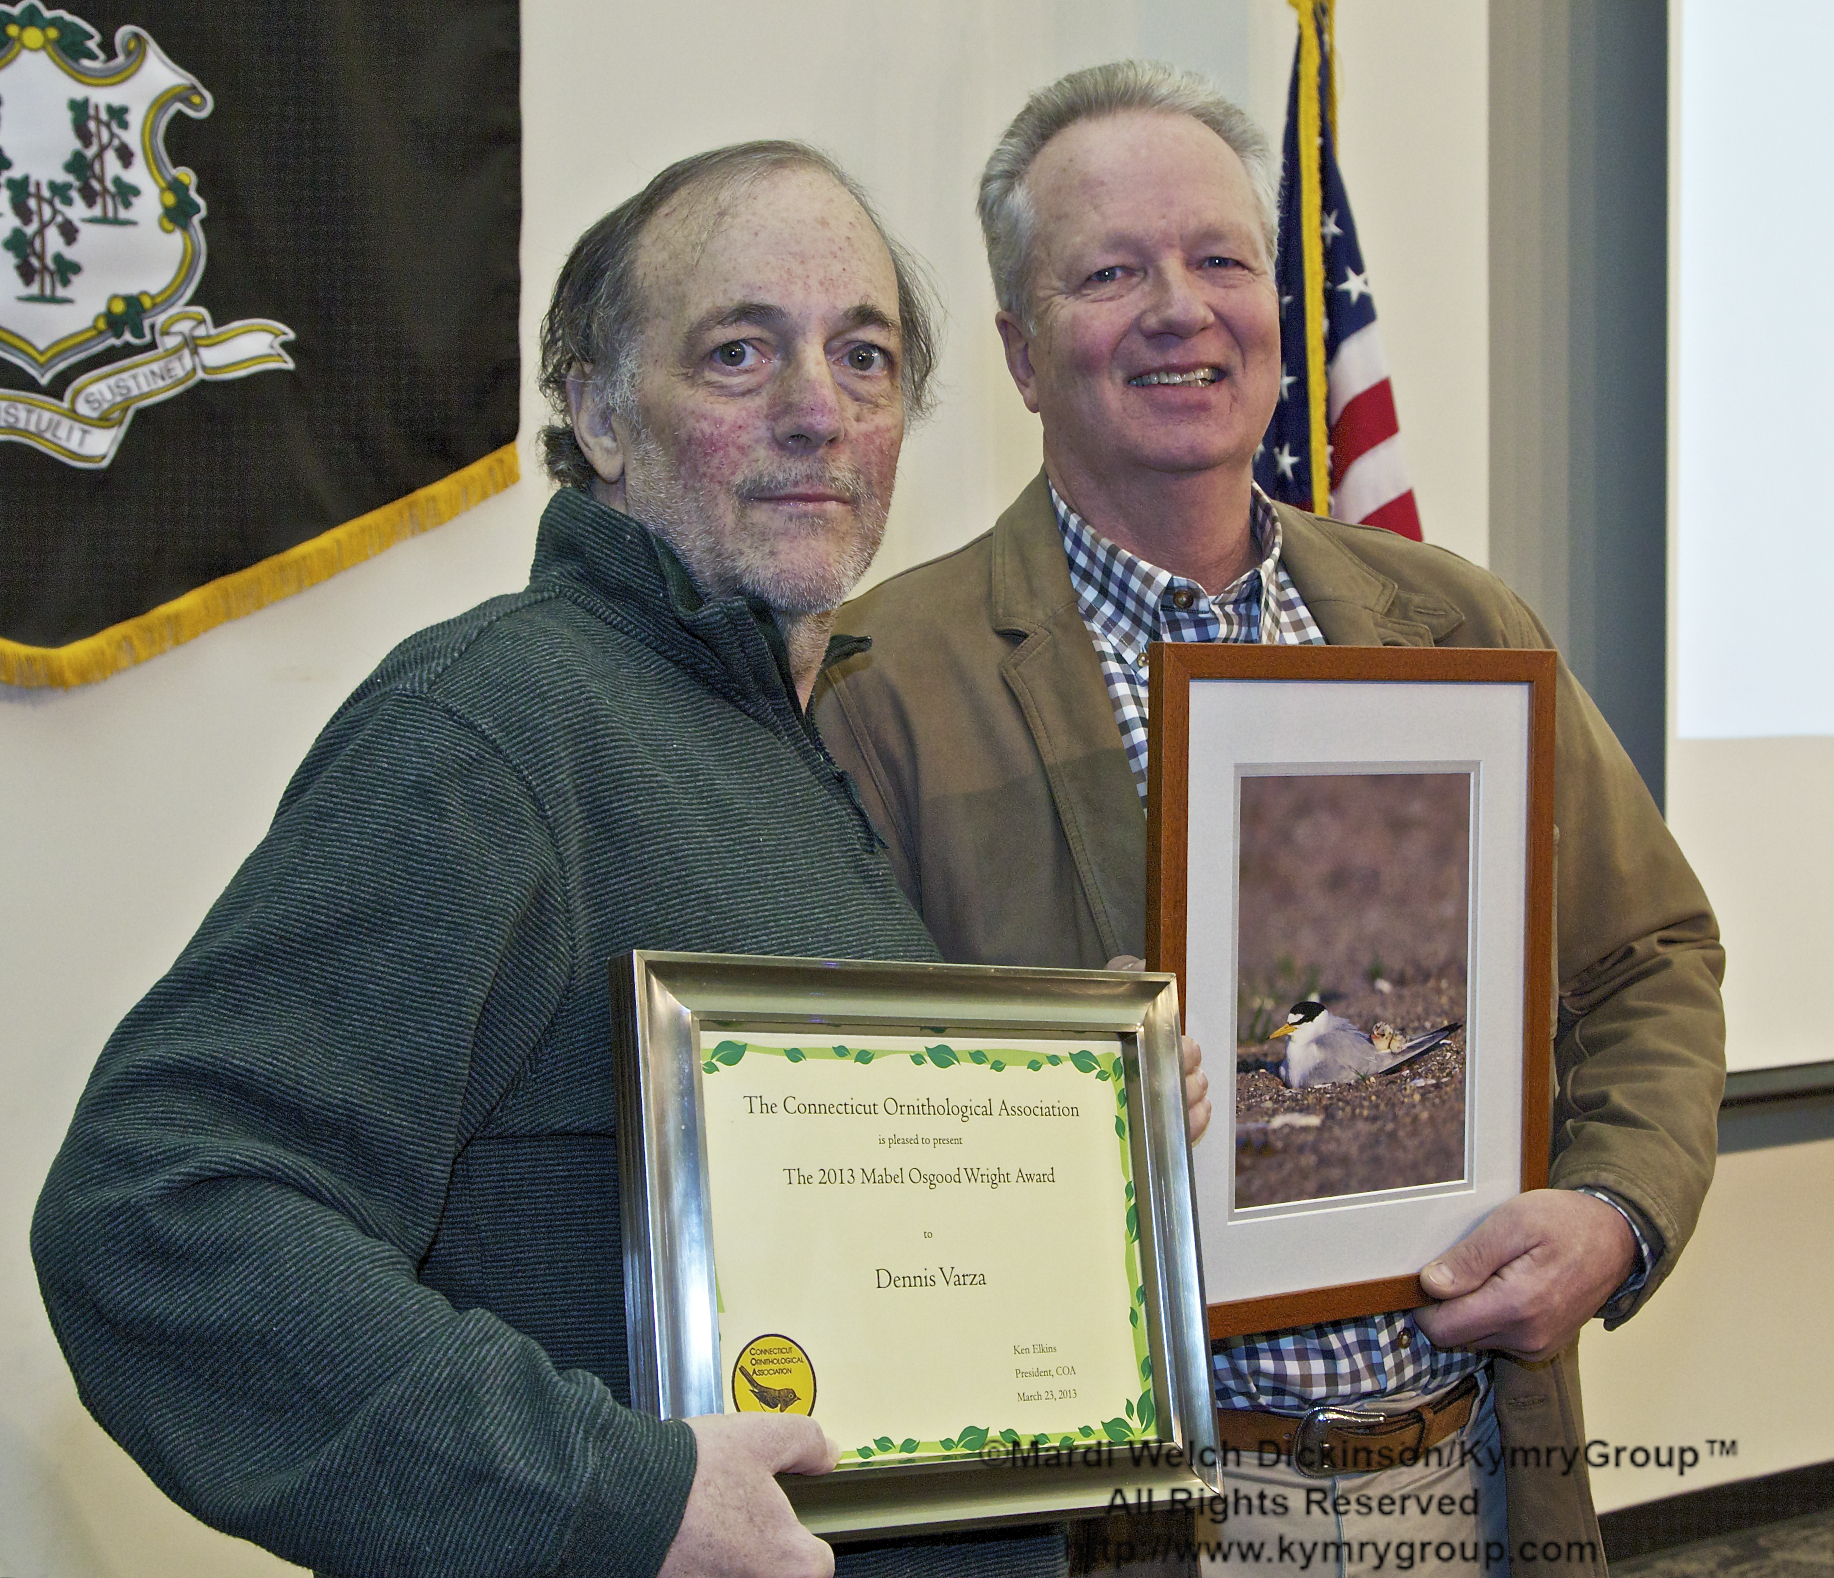 l. to r. Dennis Varza, 2013 Recipient, Mabel Osgood Wright Award; Milan Bull, Senior Director of Science and Conservation for CT Audubon Society; COA 29th Annual Meeting 2013, Middlesex Community College, Middletown, CT. March 23, 2013. ©Mardi Welch Dickinson /KymryGroup. All Rights Reserved.